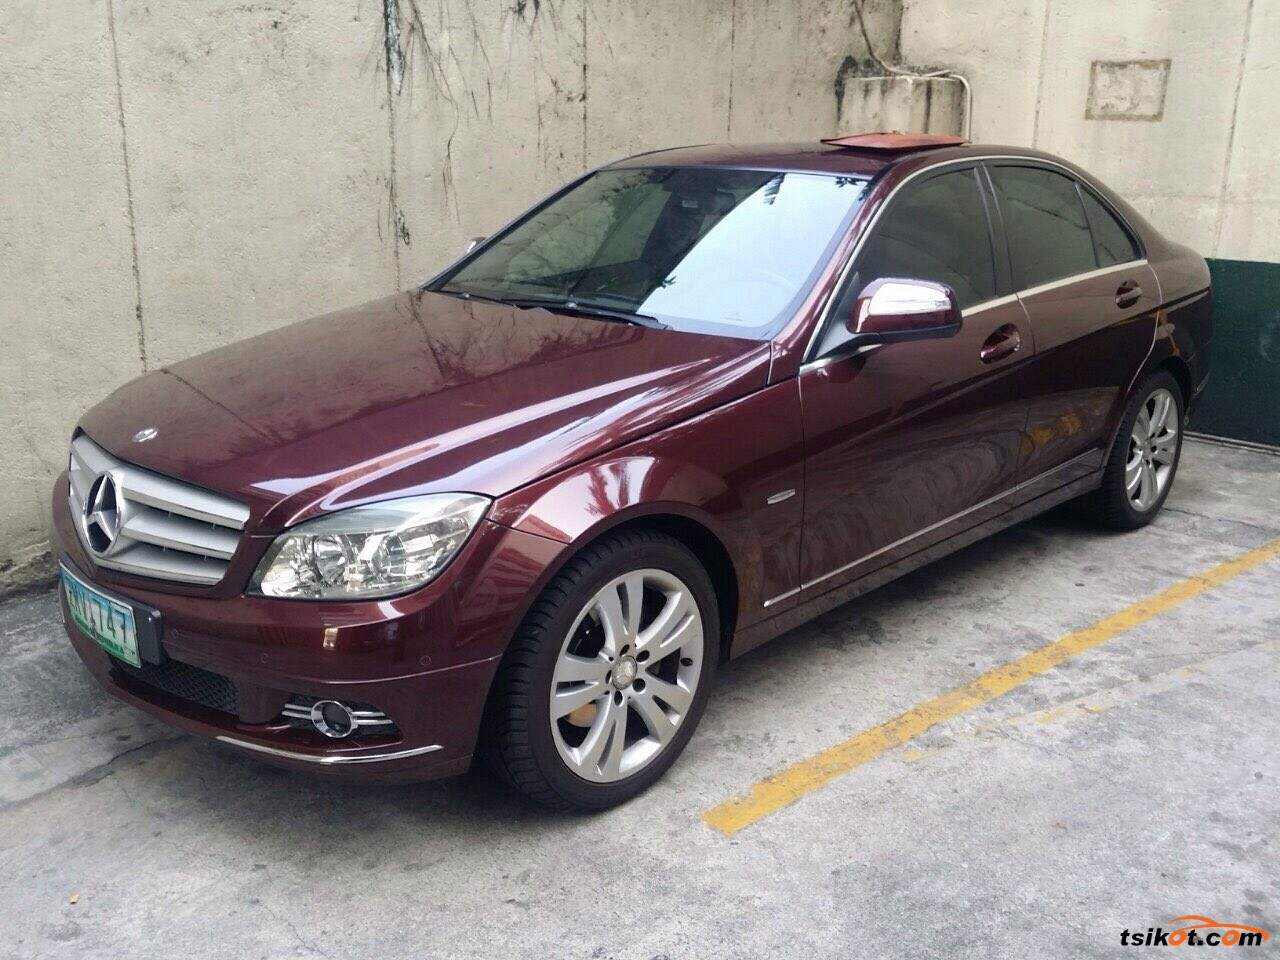 Mercedes benz c class 2008 car for sale metro manila for Average insurance cost for mercedes benz c300